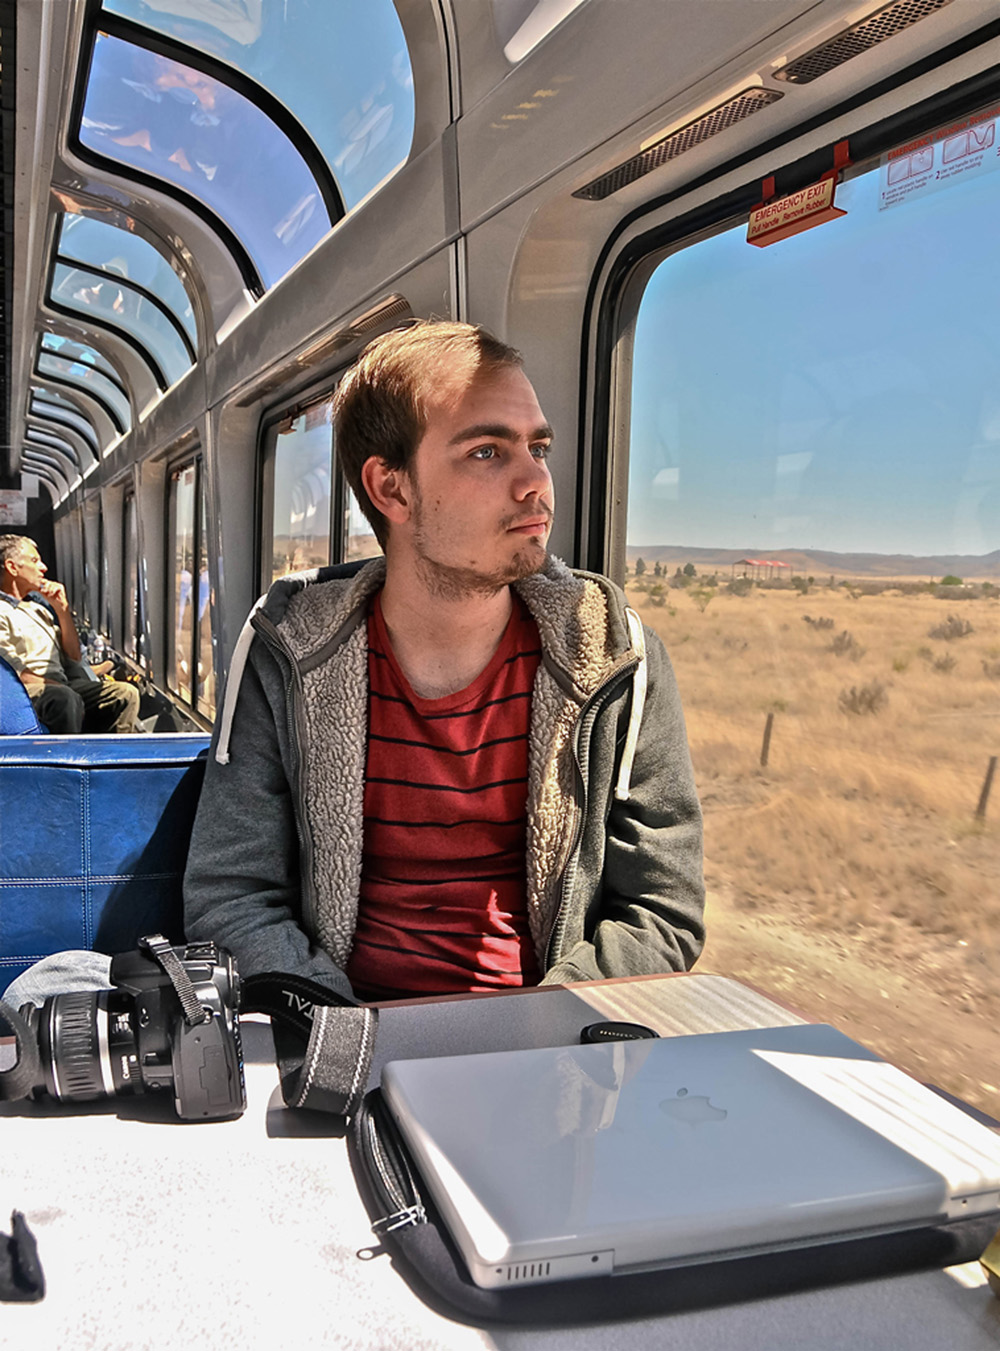 """""""Amtracks Series: Young fellow traveler to L.A."""""""